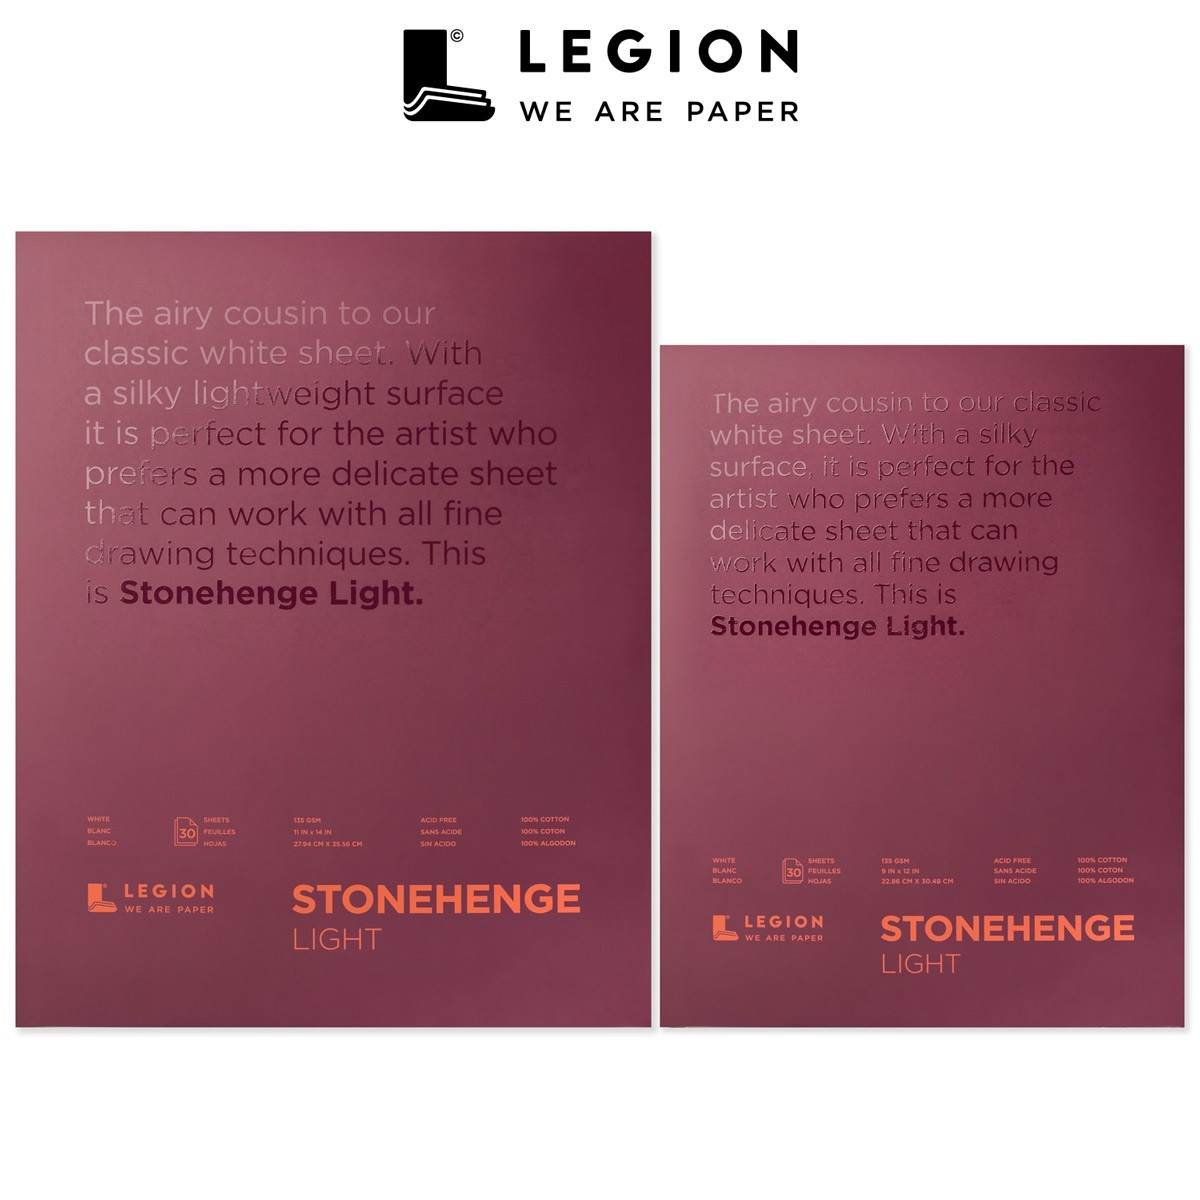 Stonehenge Light Paper Pads by Legion, 15 sheets, 100% cotton, acid-free